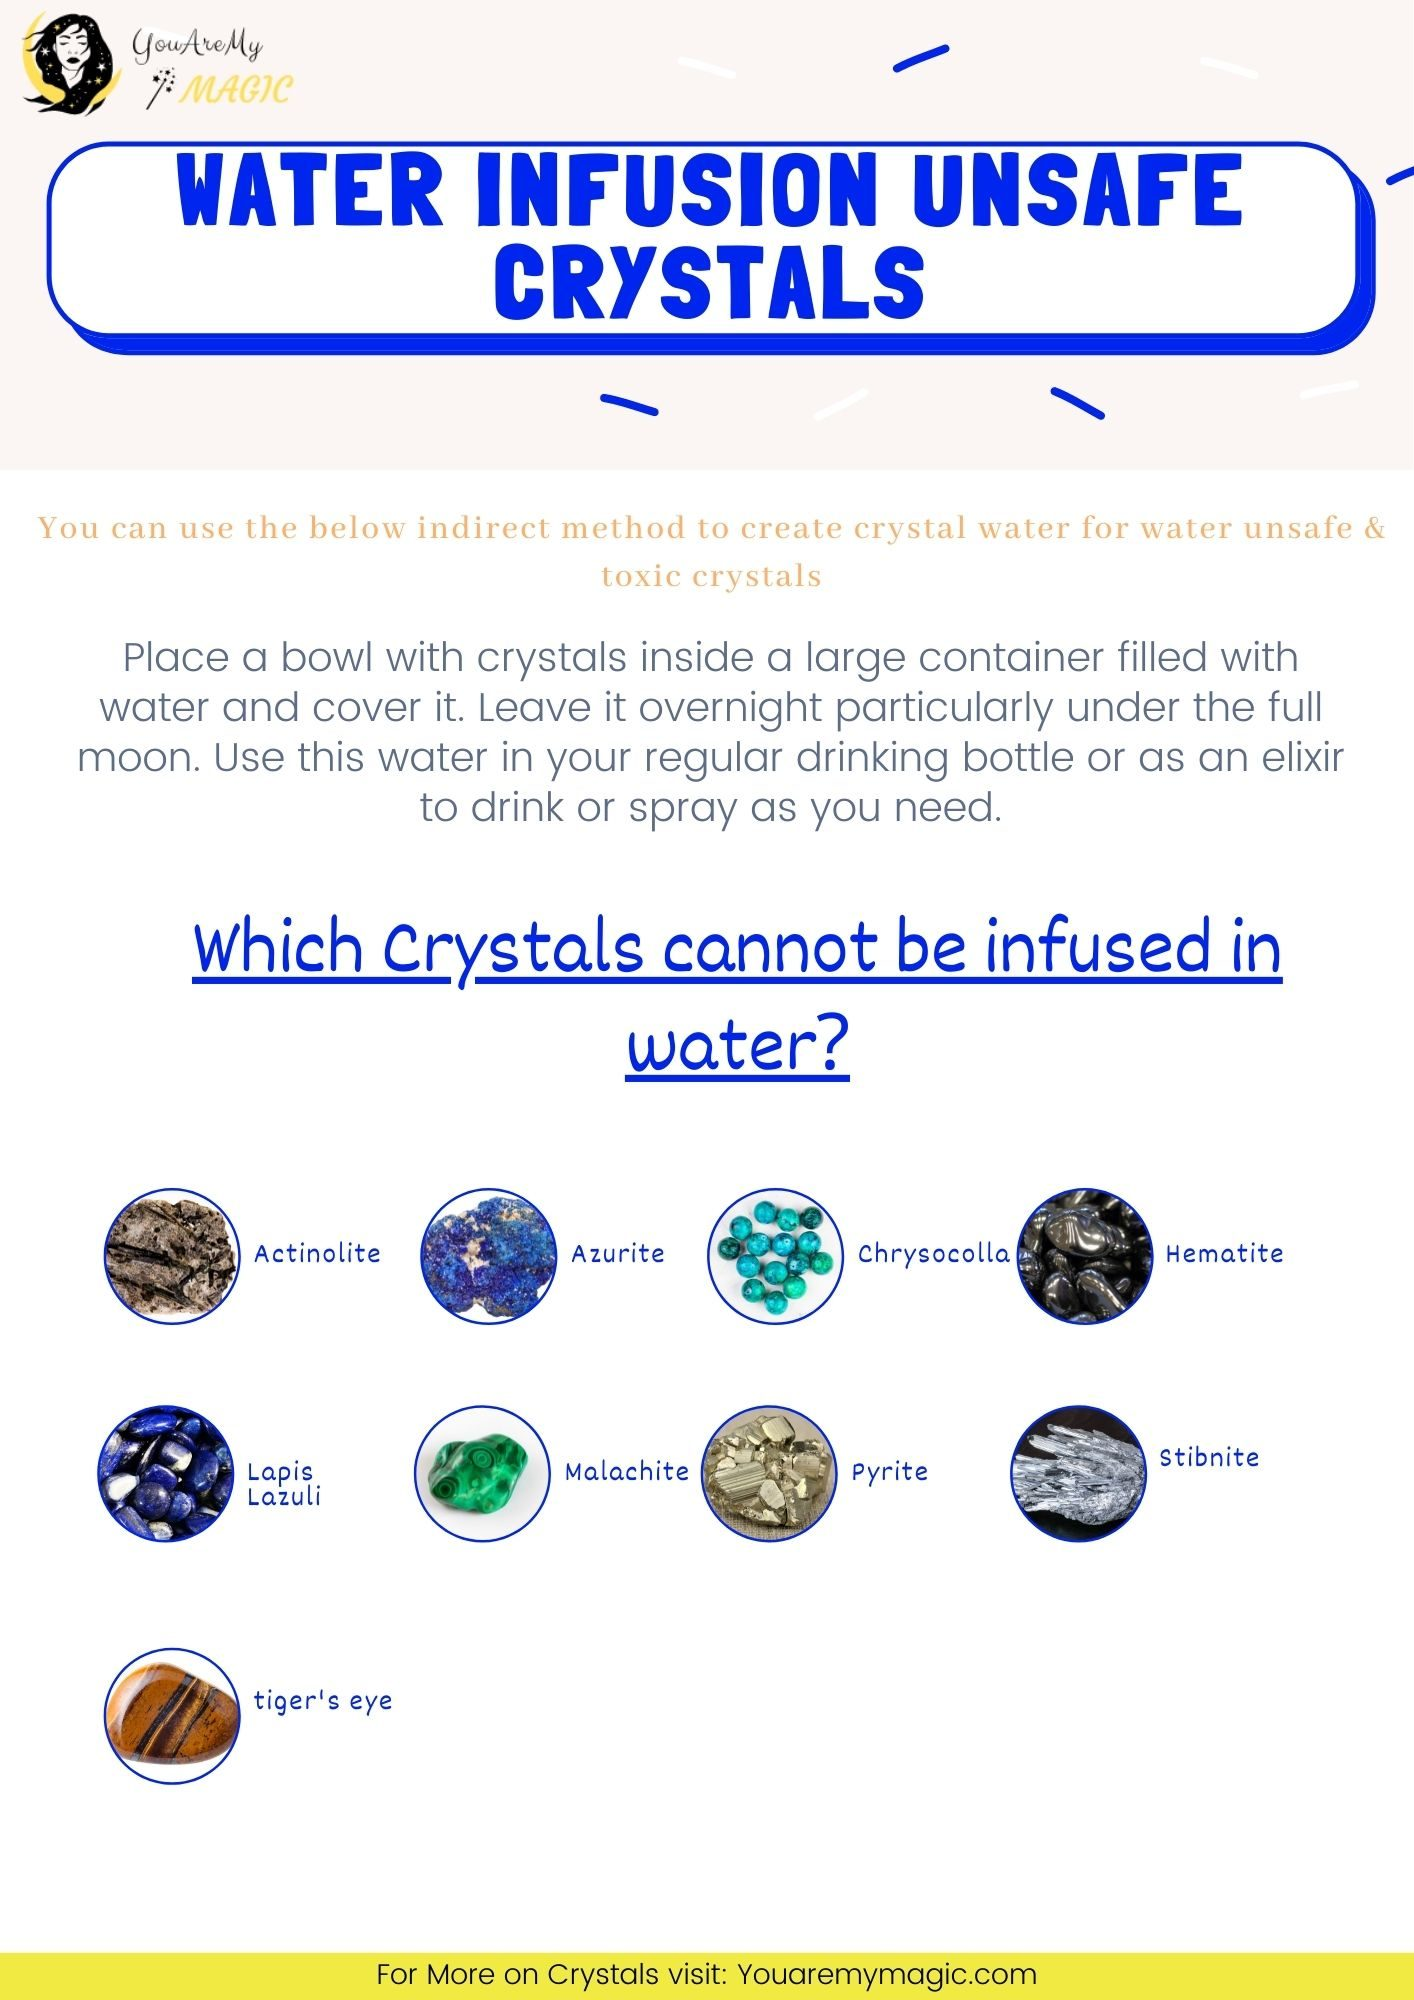 Water Infusion Unsafe Crystal List